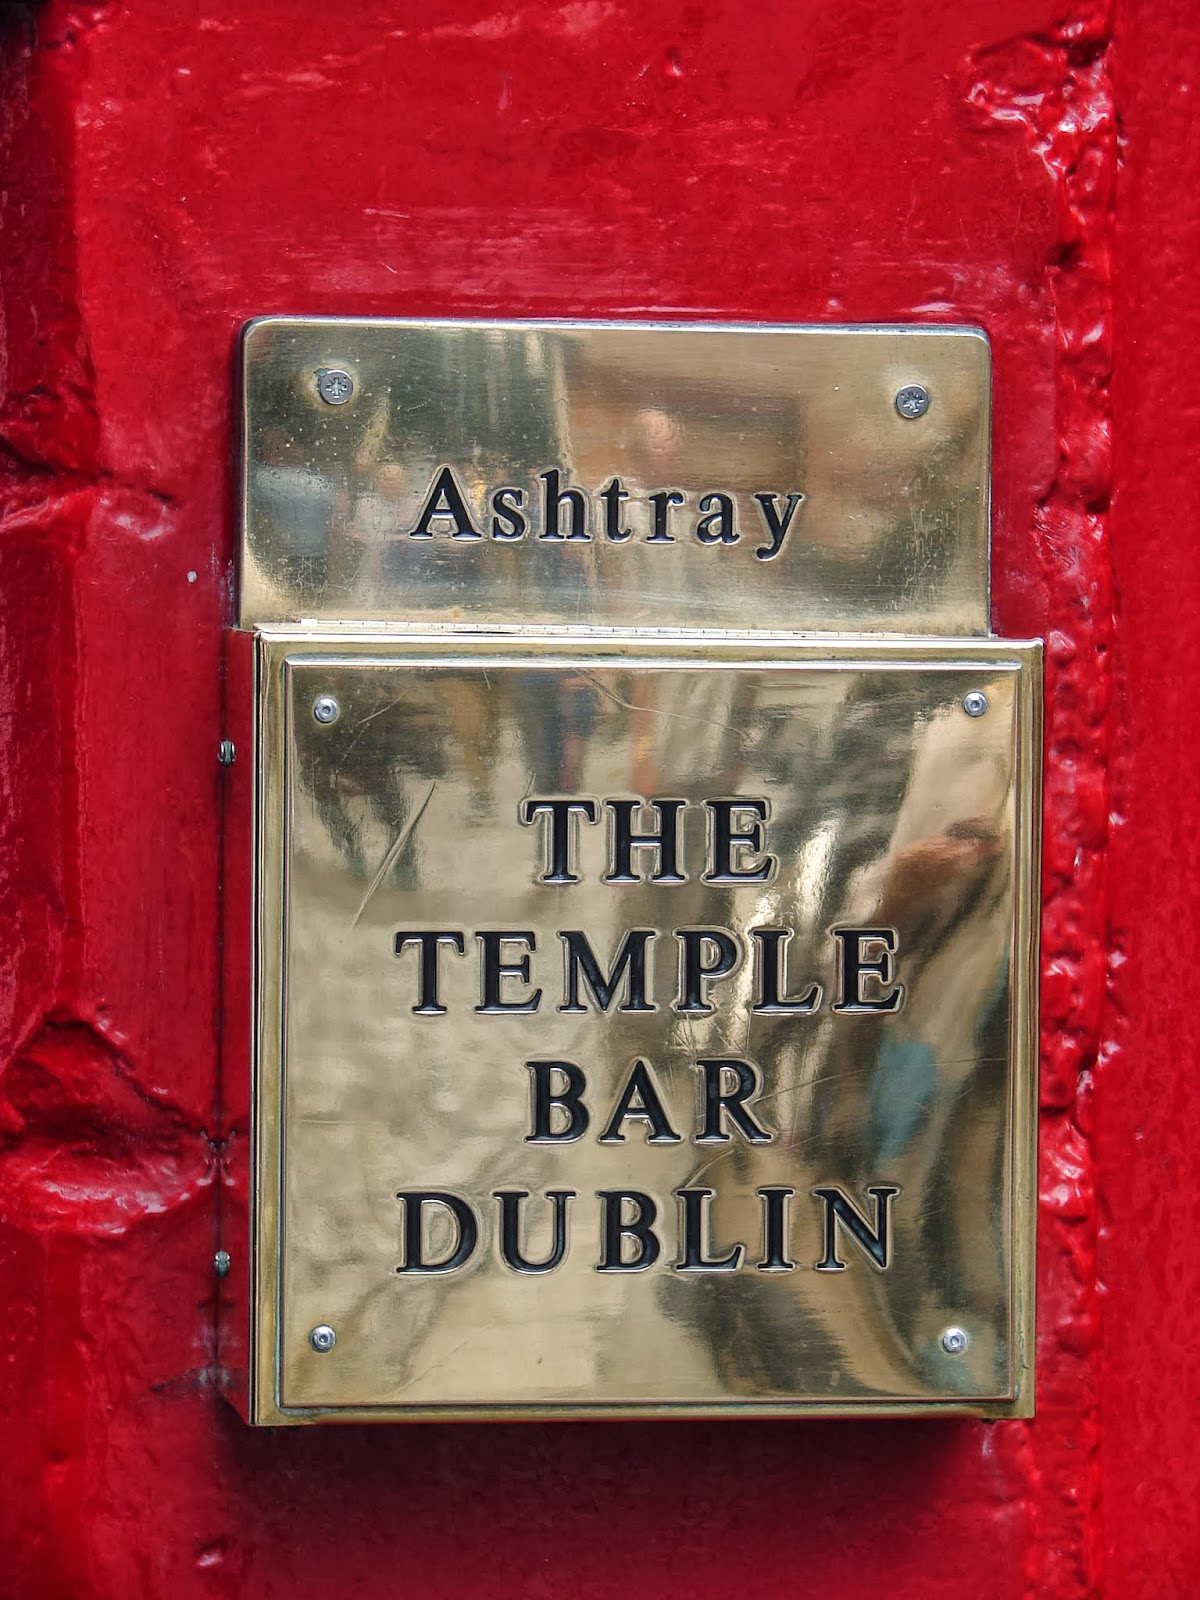 Cinseiro do The Temple Bar (foto XMLS)